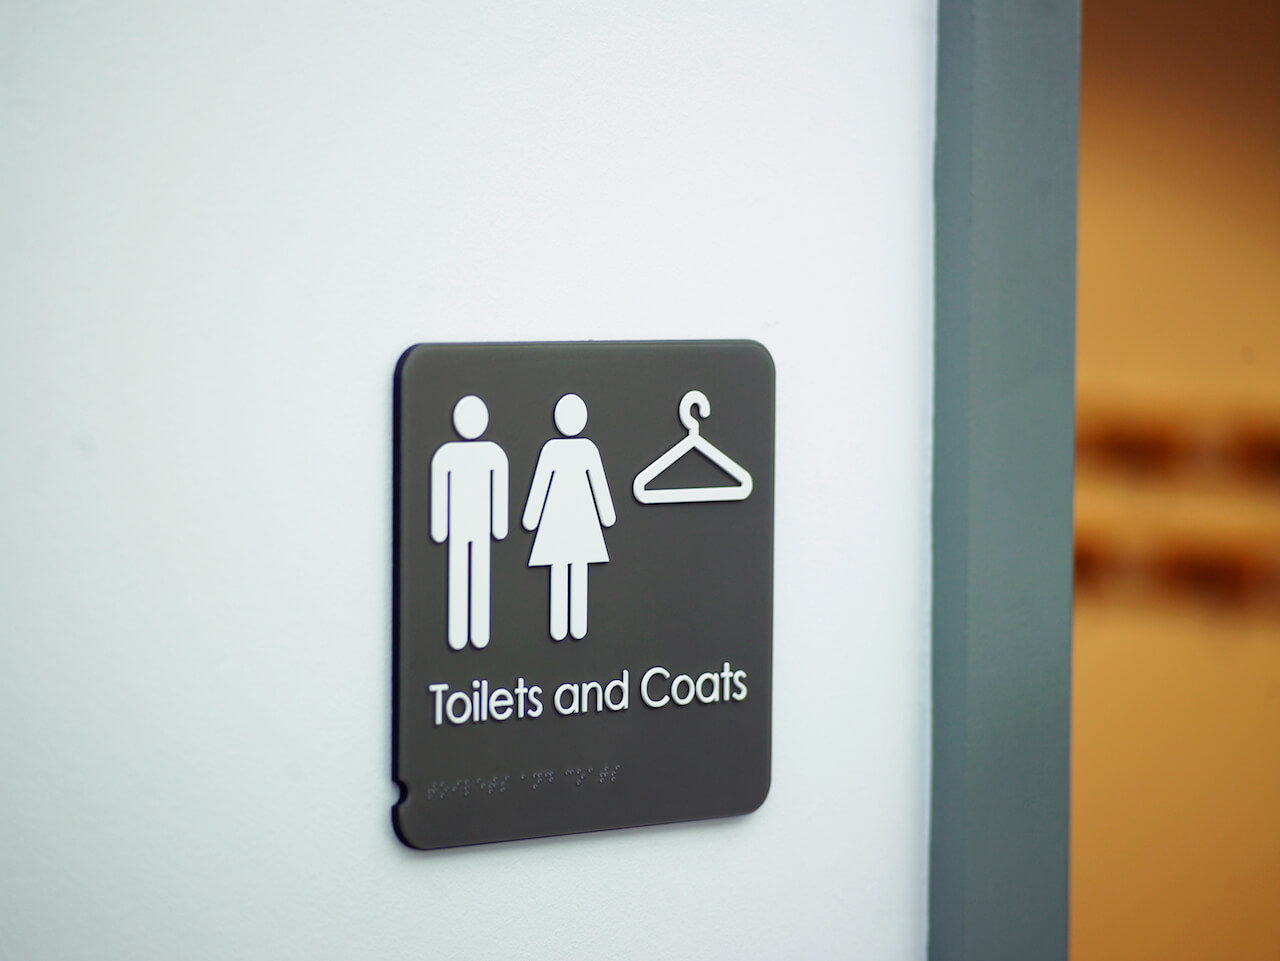 Pictograms as part of a school wayfinding and signage scheme